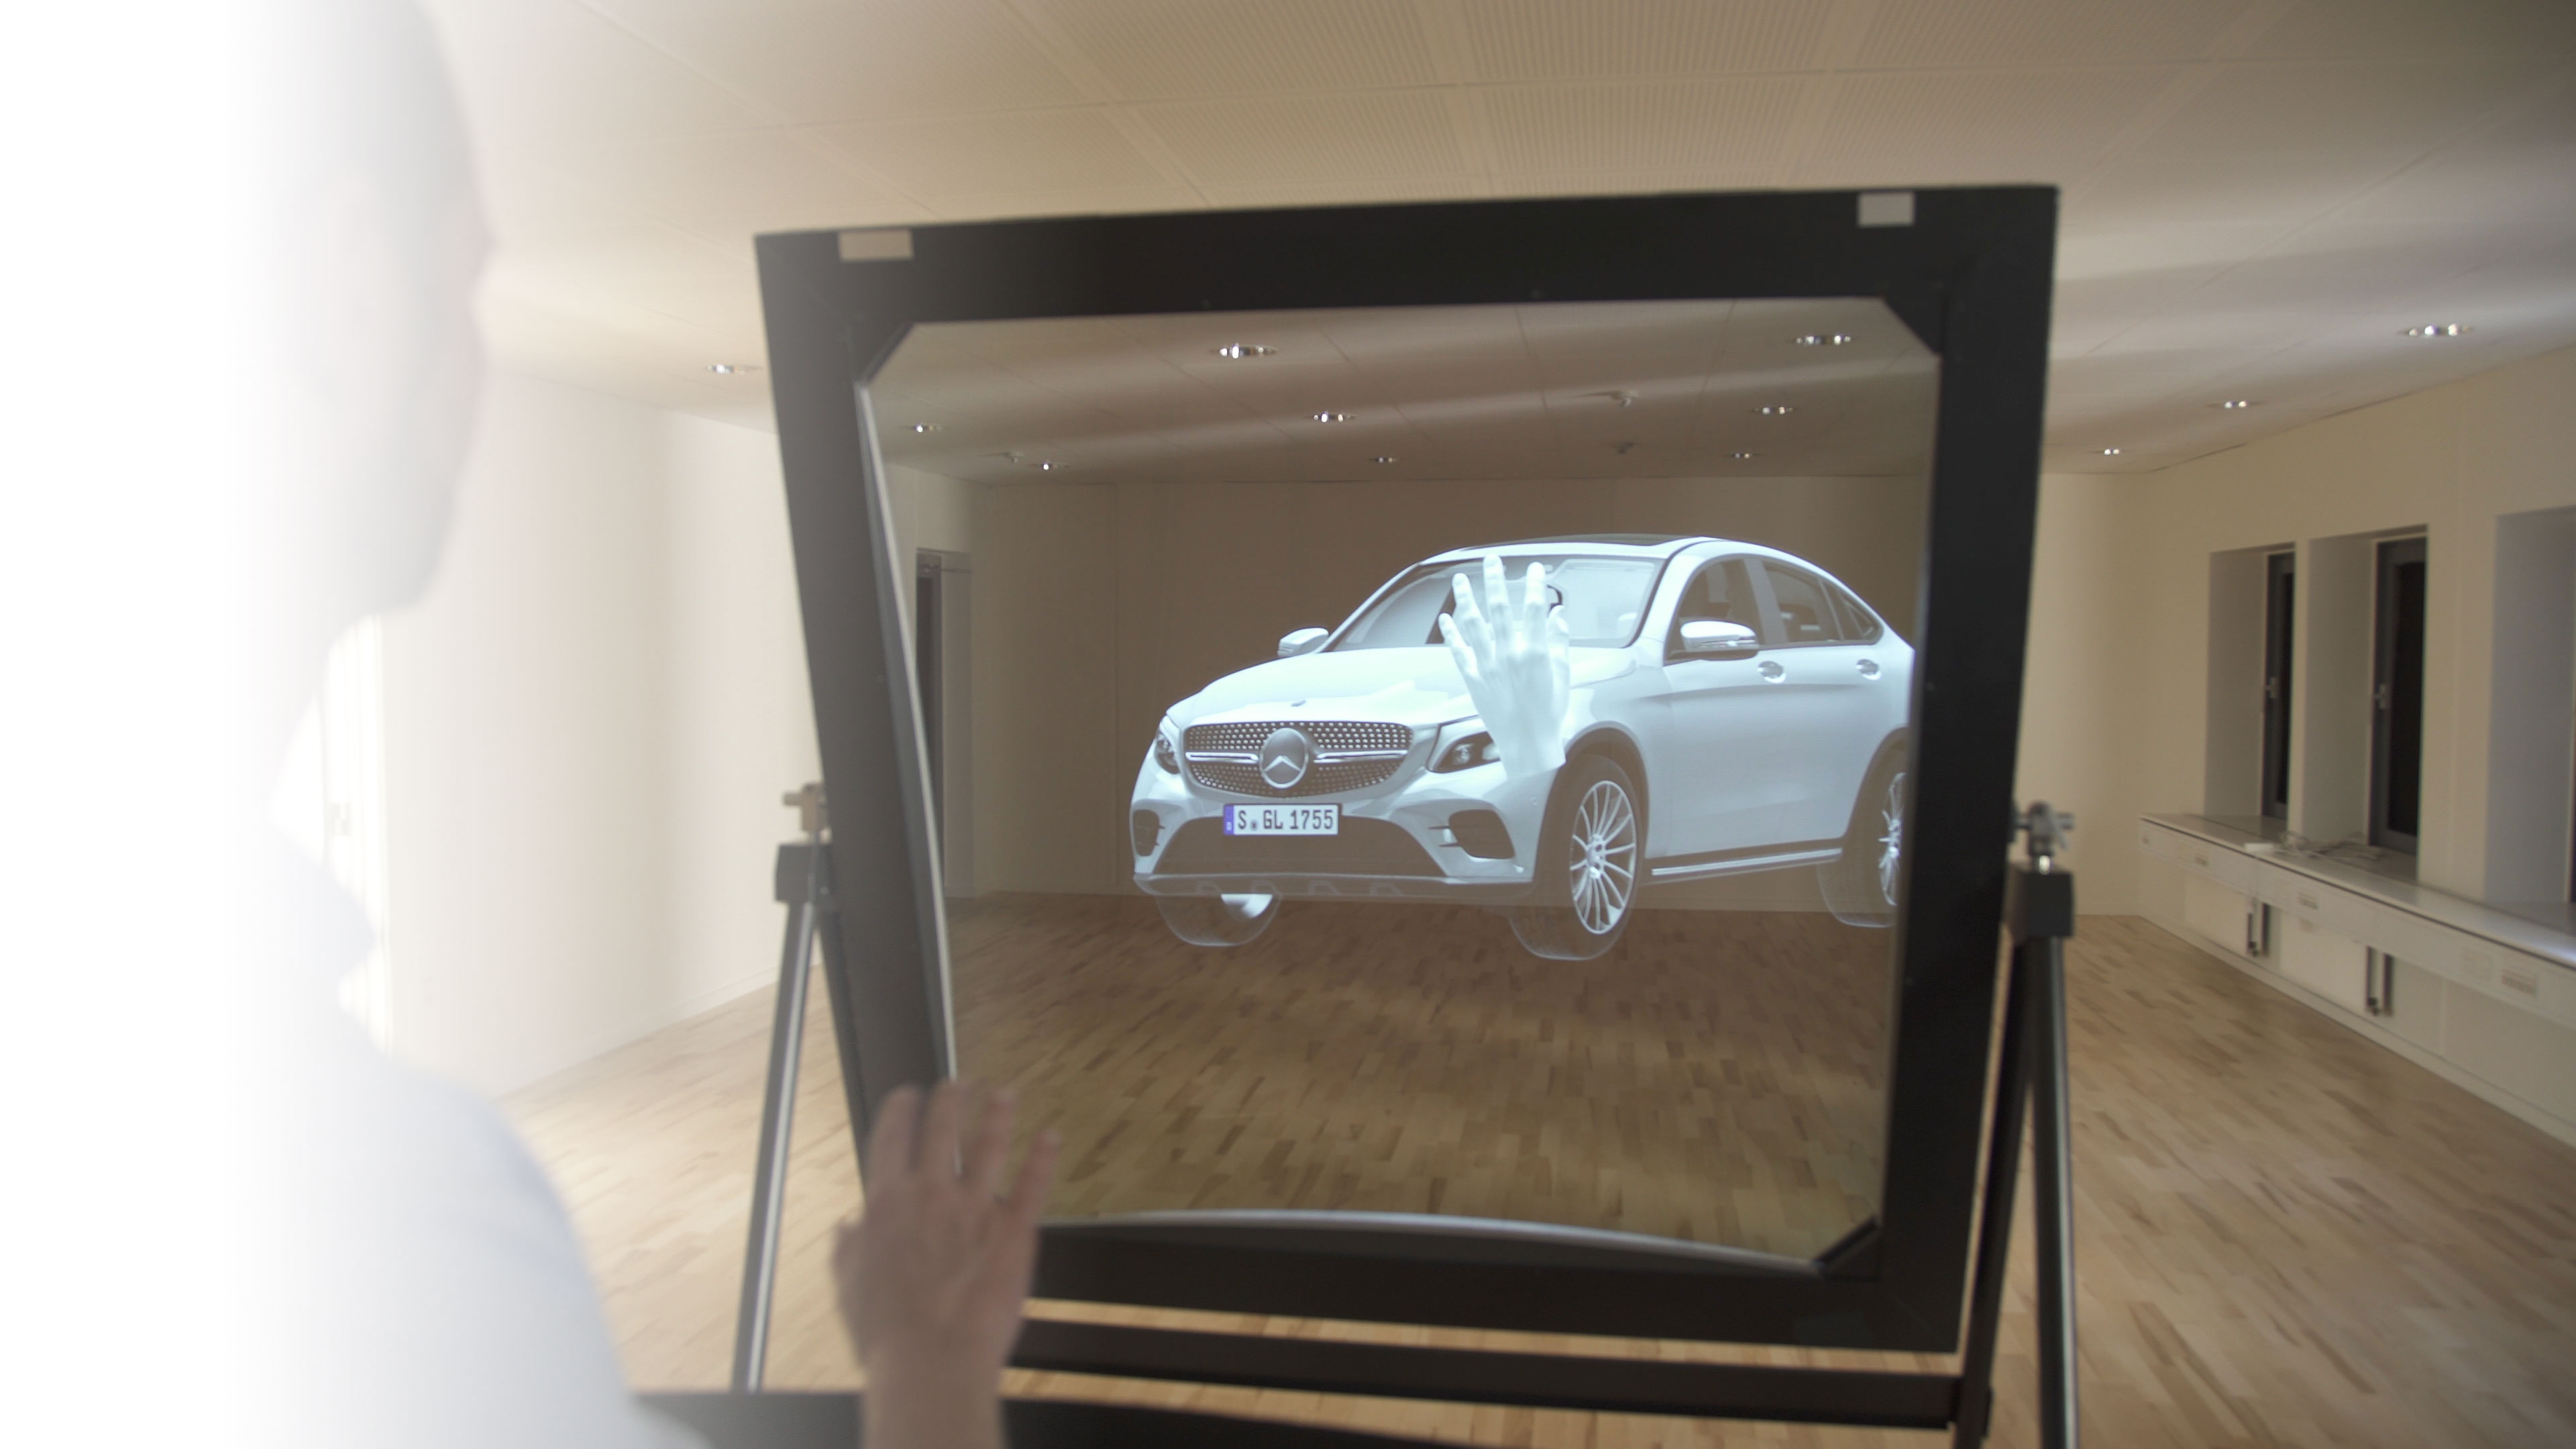 Mercedes Deepframe - the largest mixed reality display